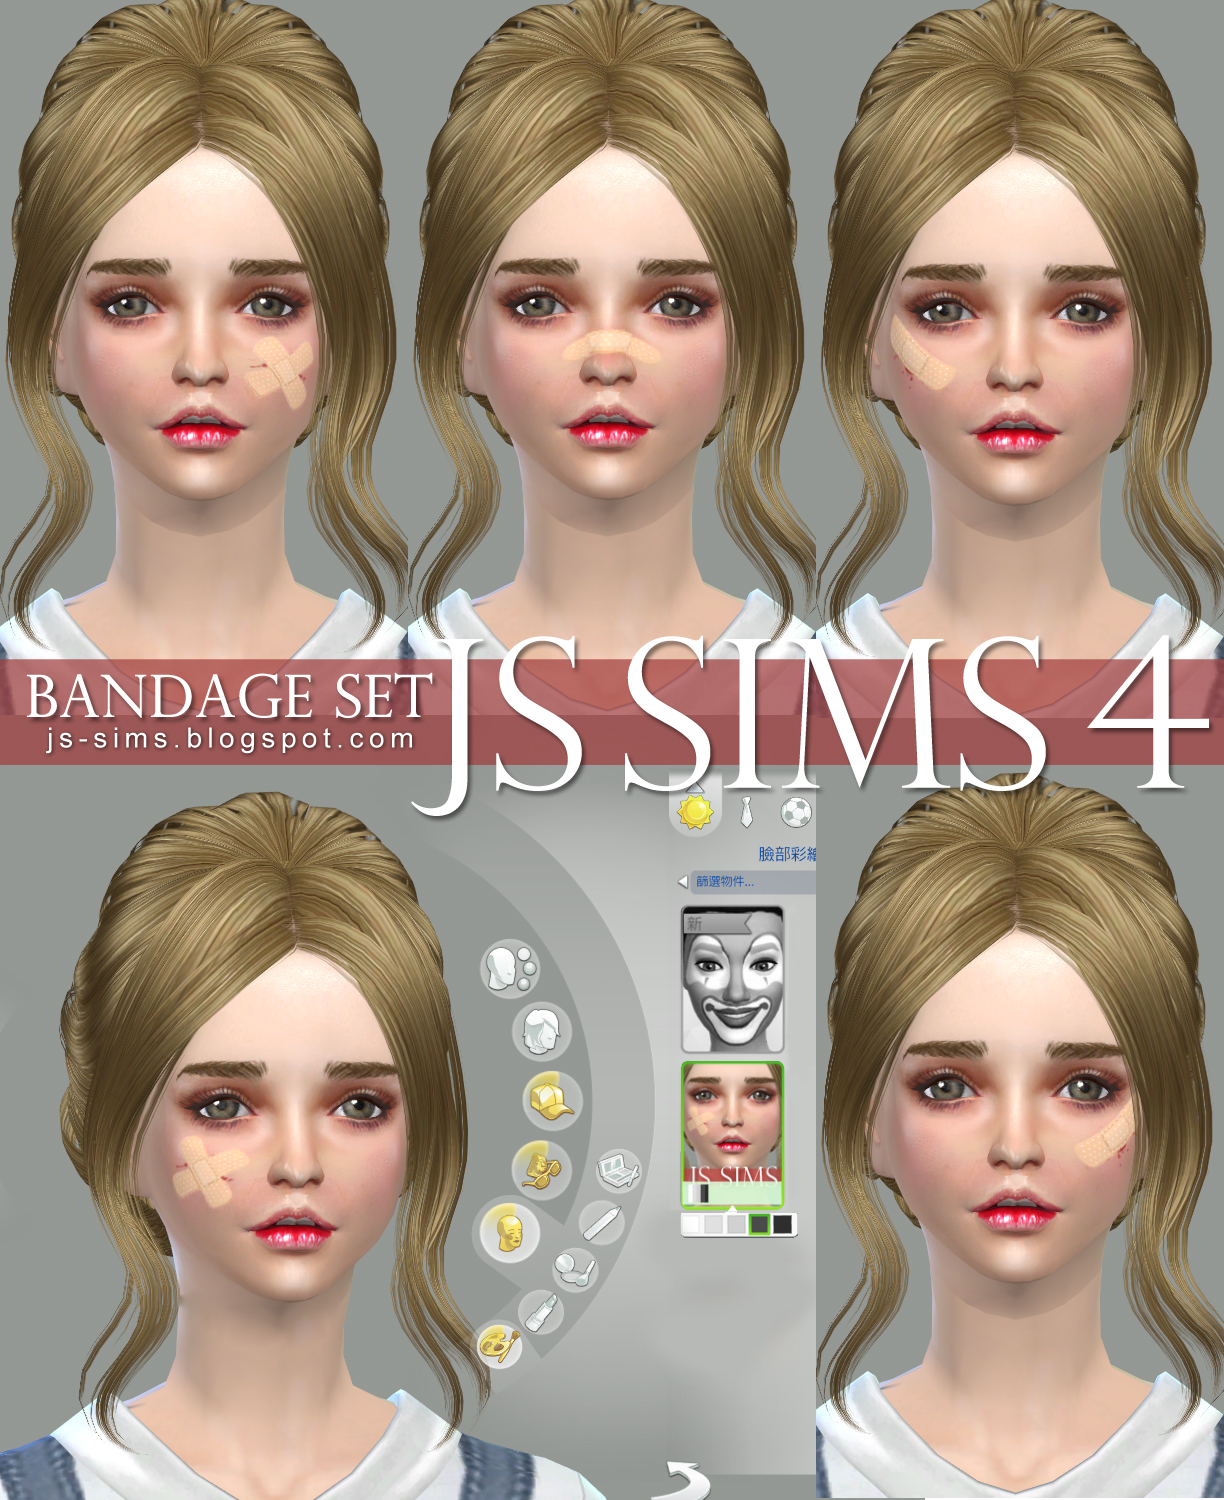 Bandage Set at JS Sims 4